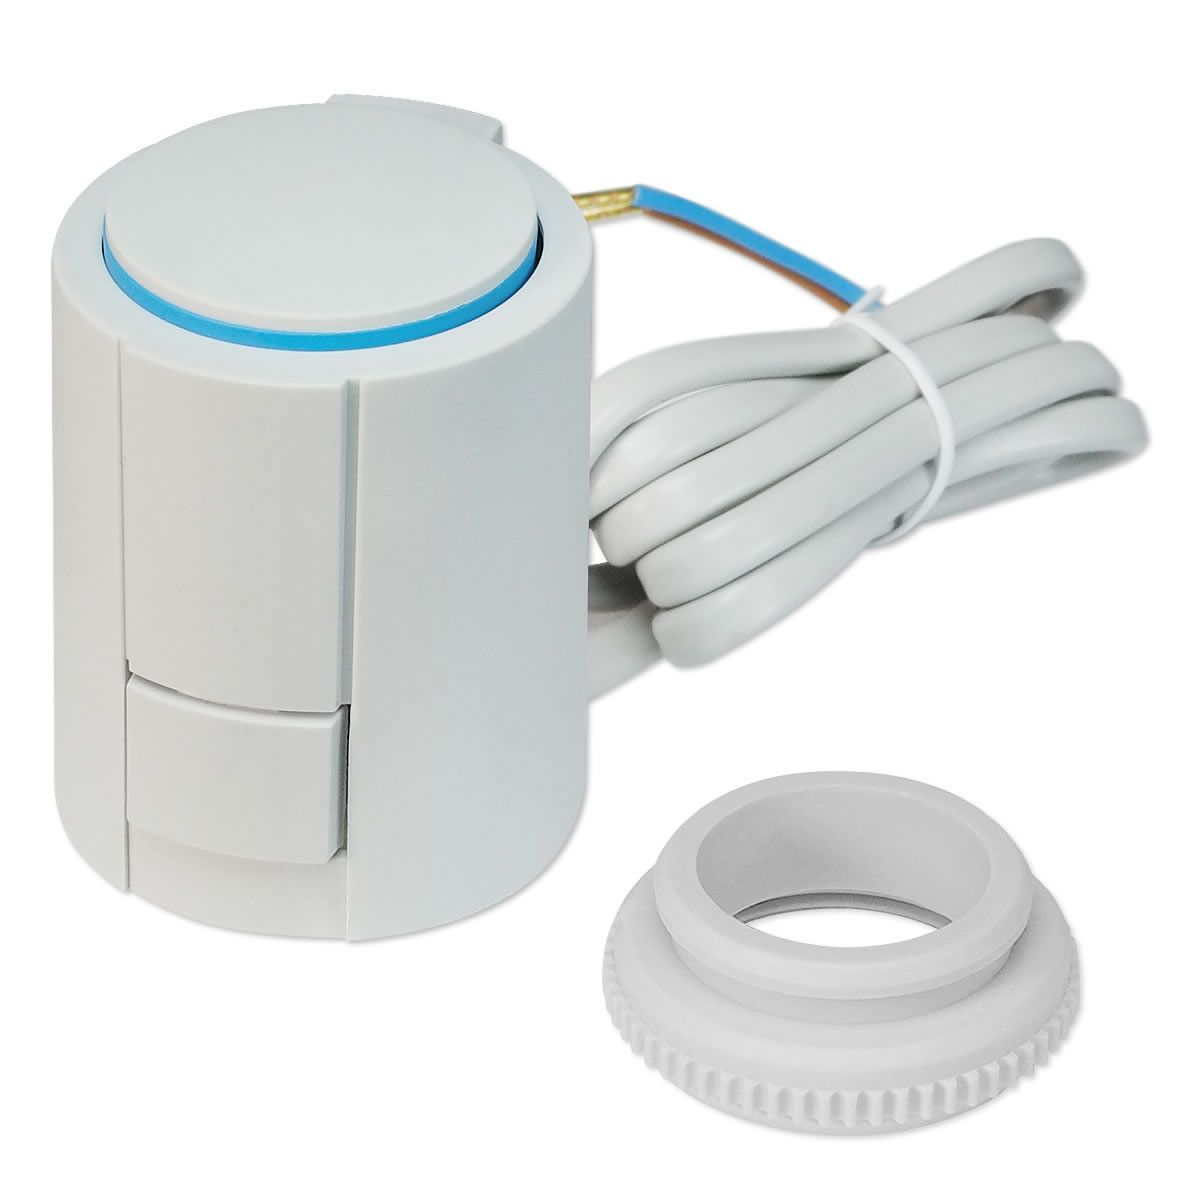 Home Automation Heating With Ebus And Bulex Room Temperature Controller Finally We Need Something For Independent Control Whether Or Not This Makes Sense Depends On The Situation Type Of House